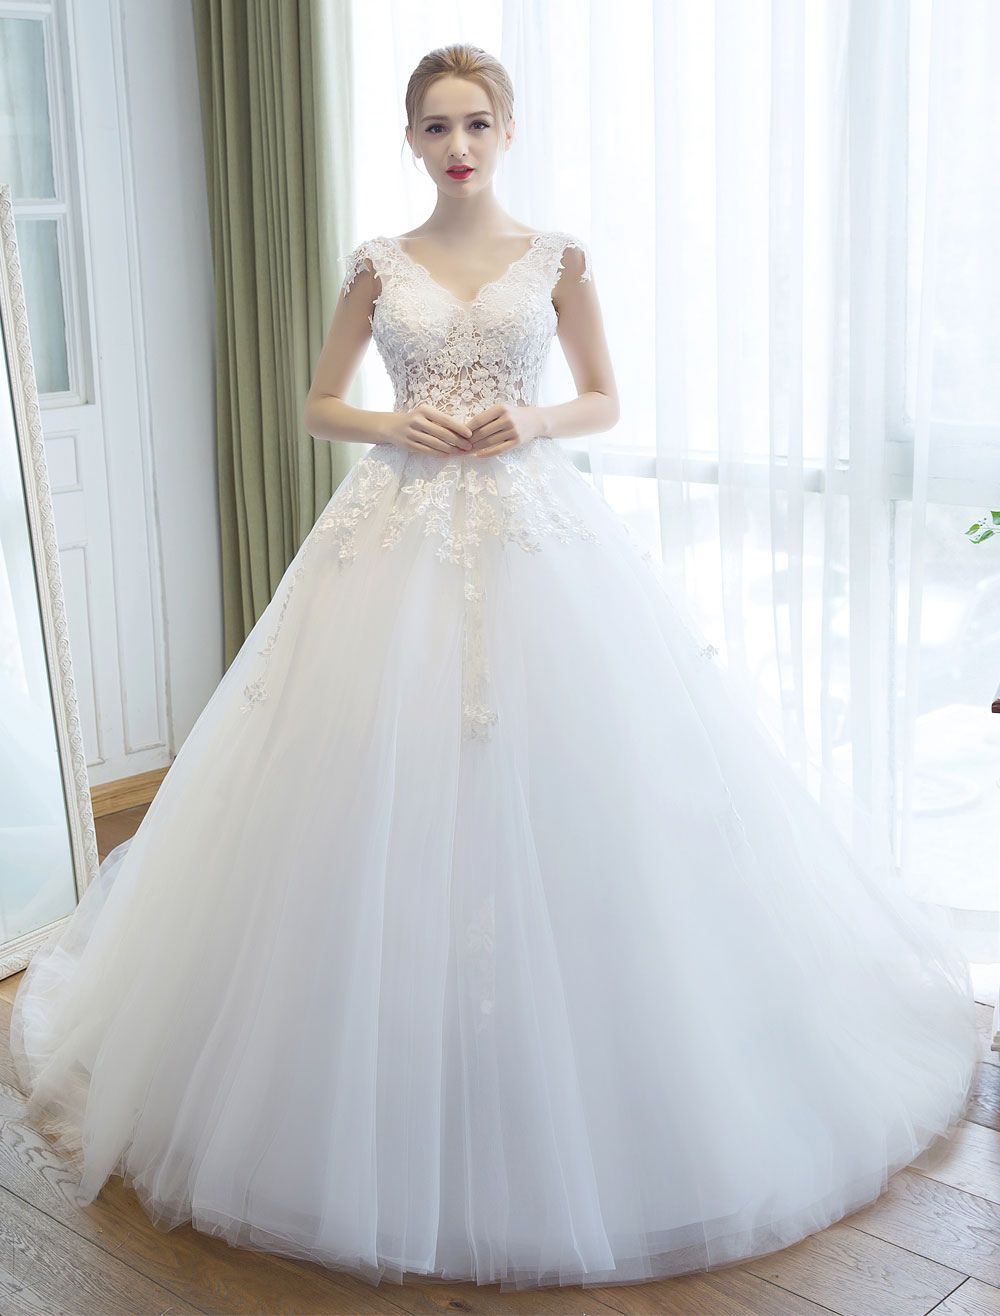 Buy Wedding Dresses Princess Ball Gown Ivory Bridal Gown V Neck Illusion Backless Lace Applique Tulle Bridal Dress With Train for $202.39 in Milanoo store